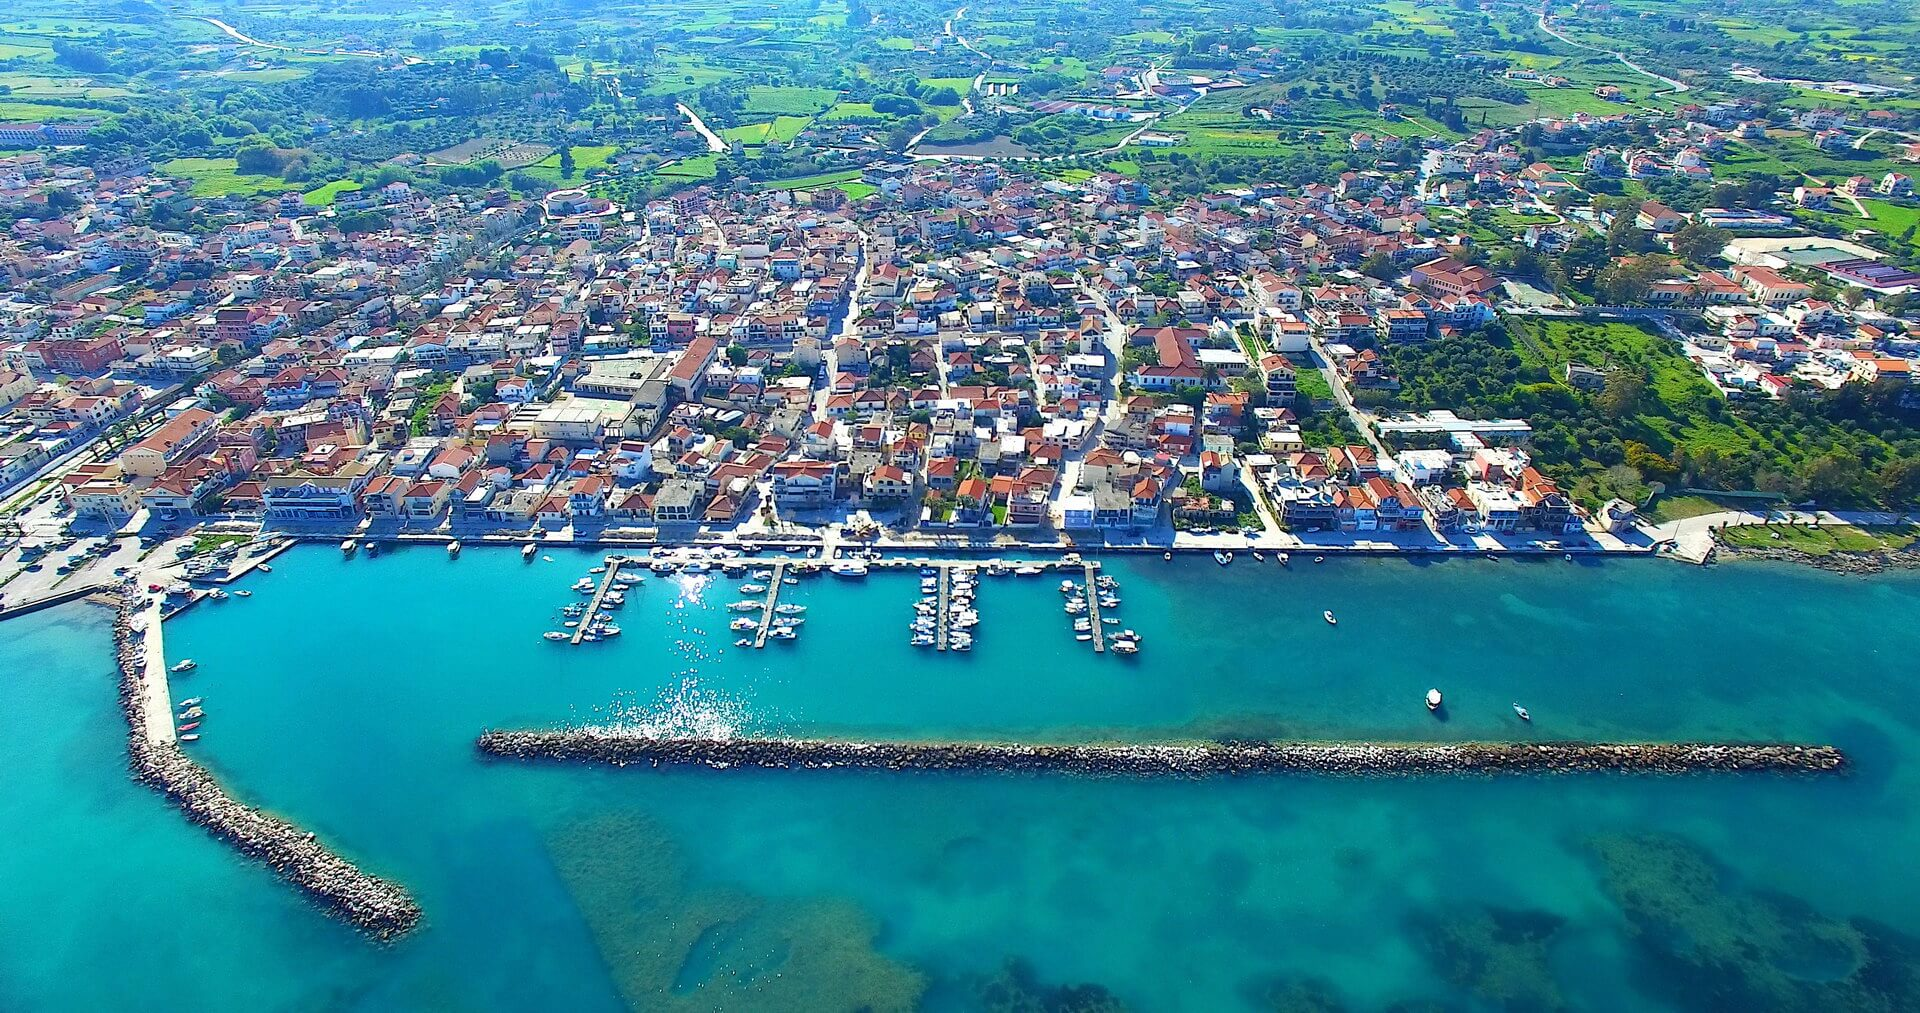 City of Lixouri at Kefalonia